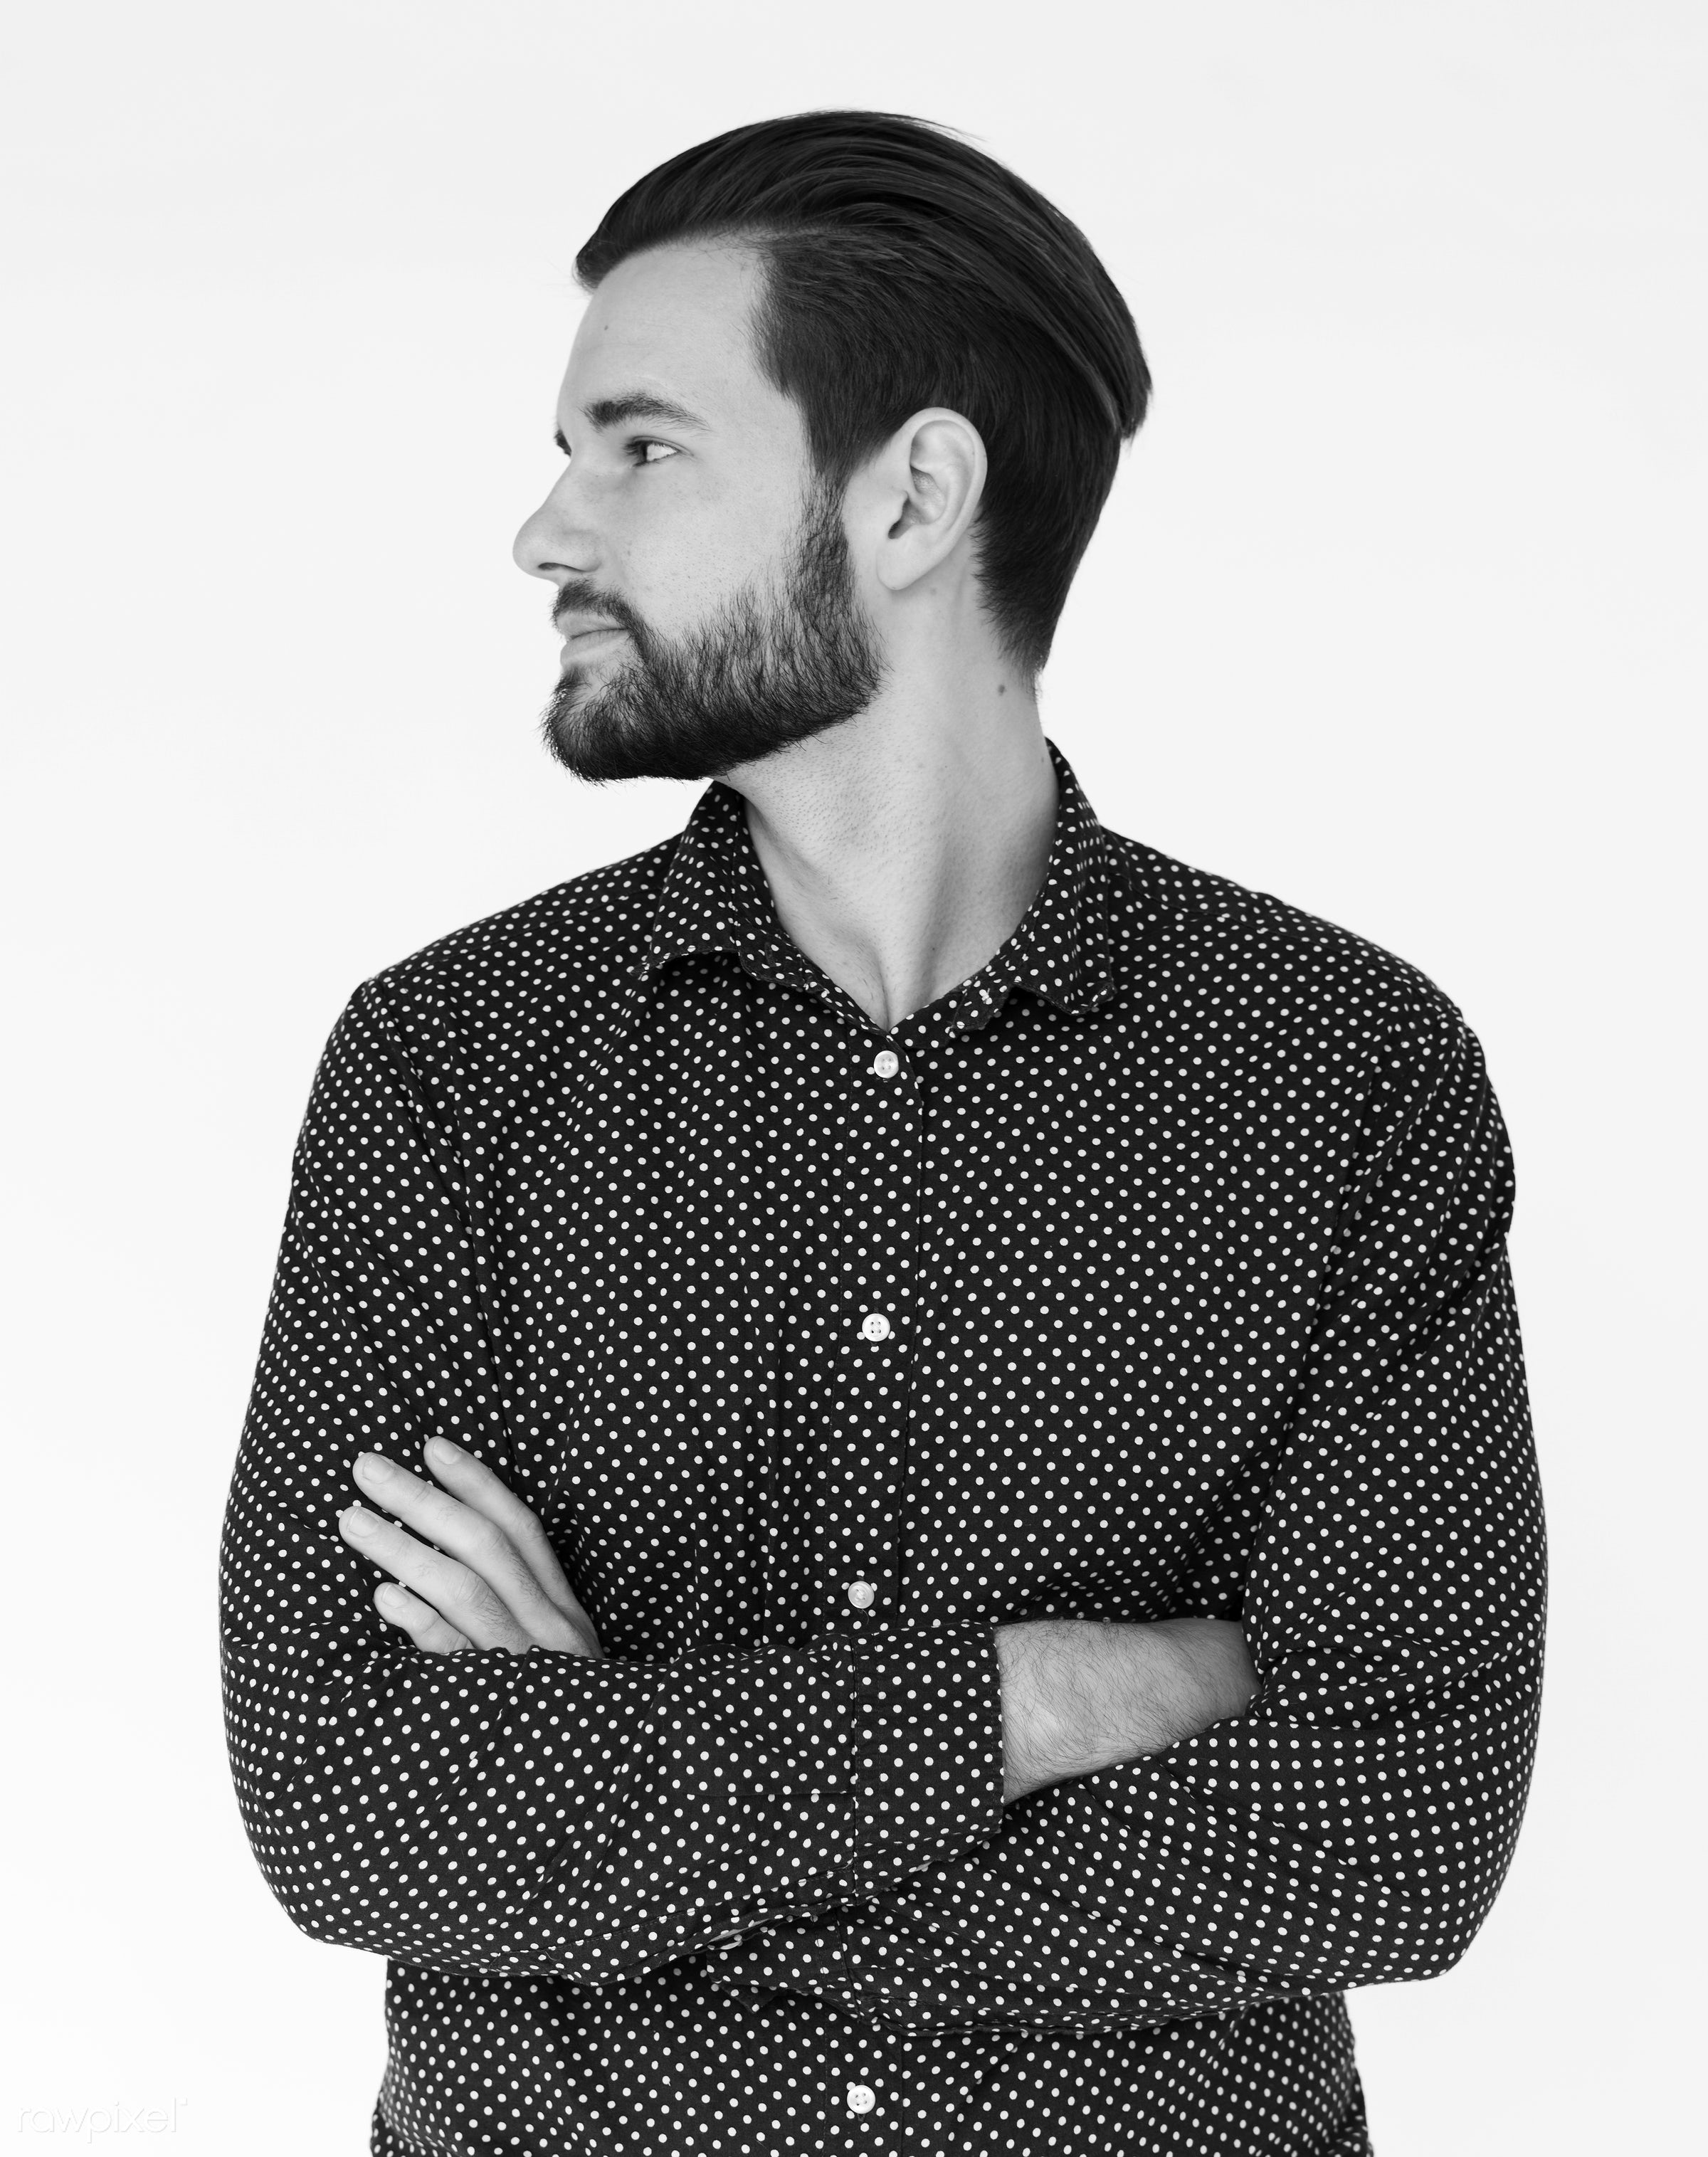 expression, studio, model, person, isolated on white, one, people, business, caucasian, modern, businessman, style, positive...